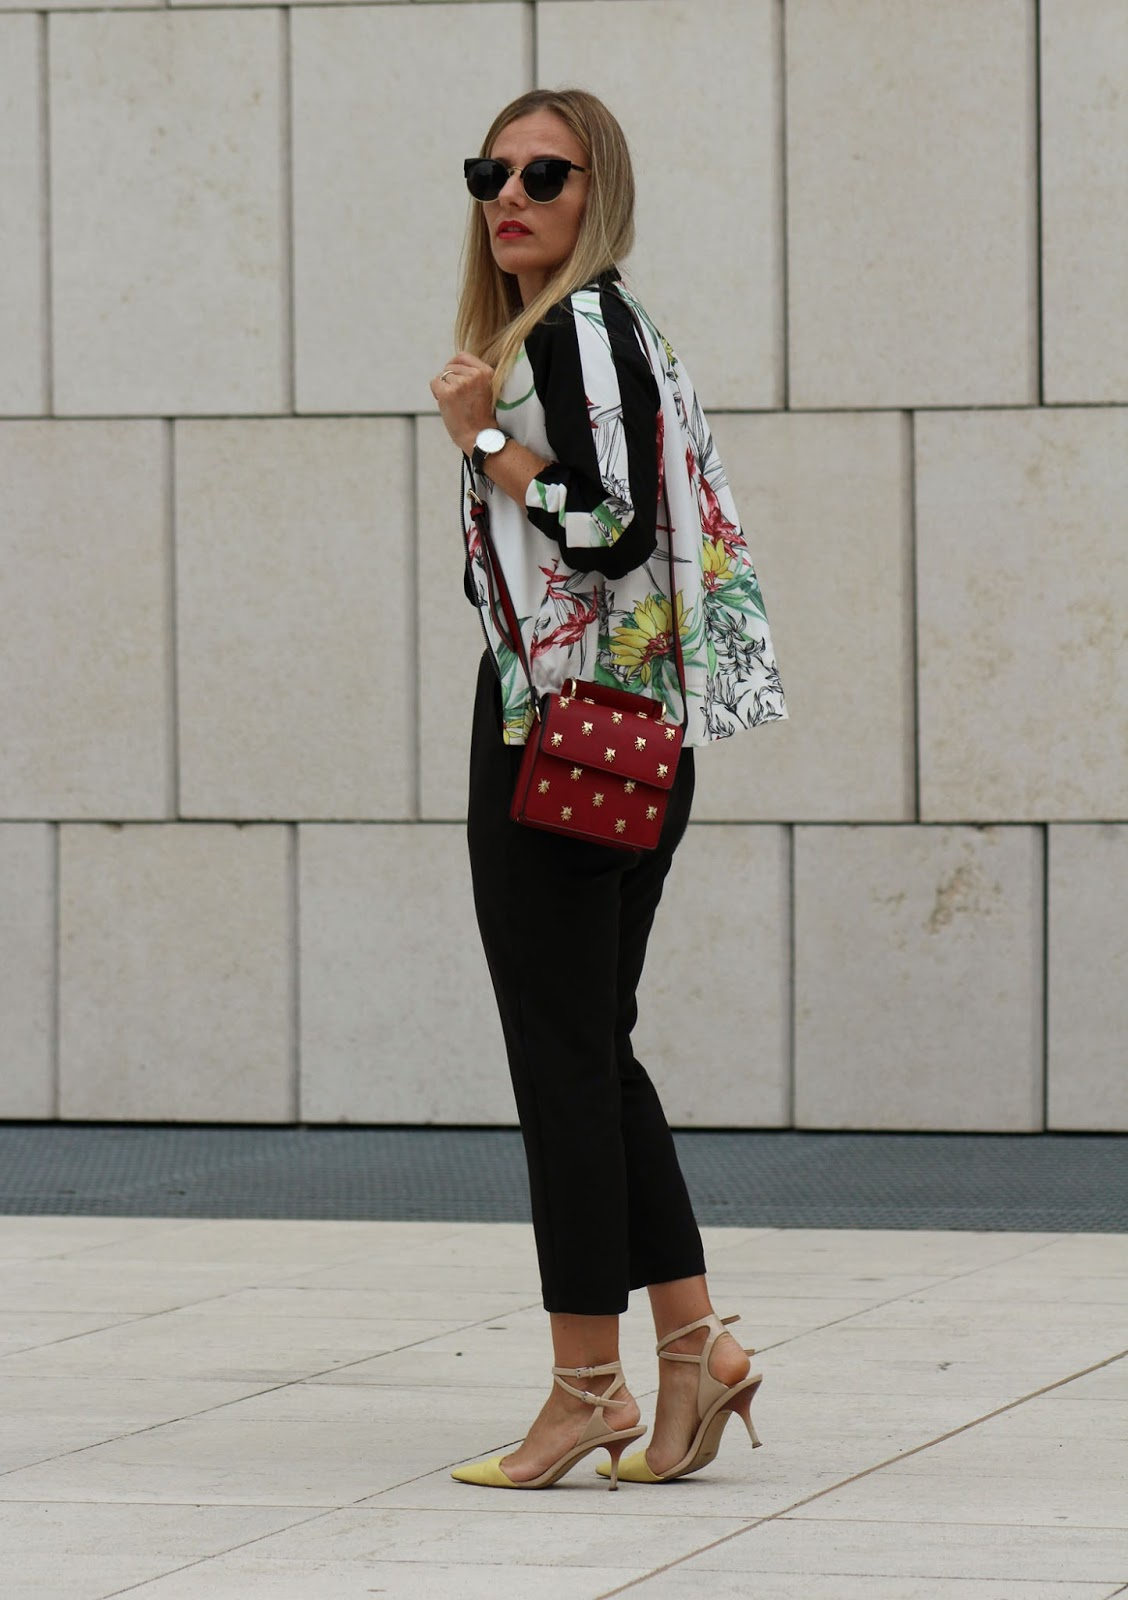 Eniwhere Fashion - Zaful - Black jumpsuit and floral bomber